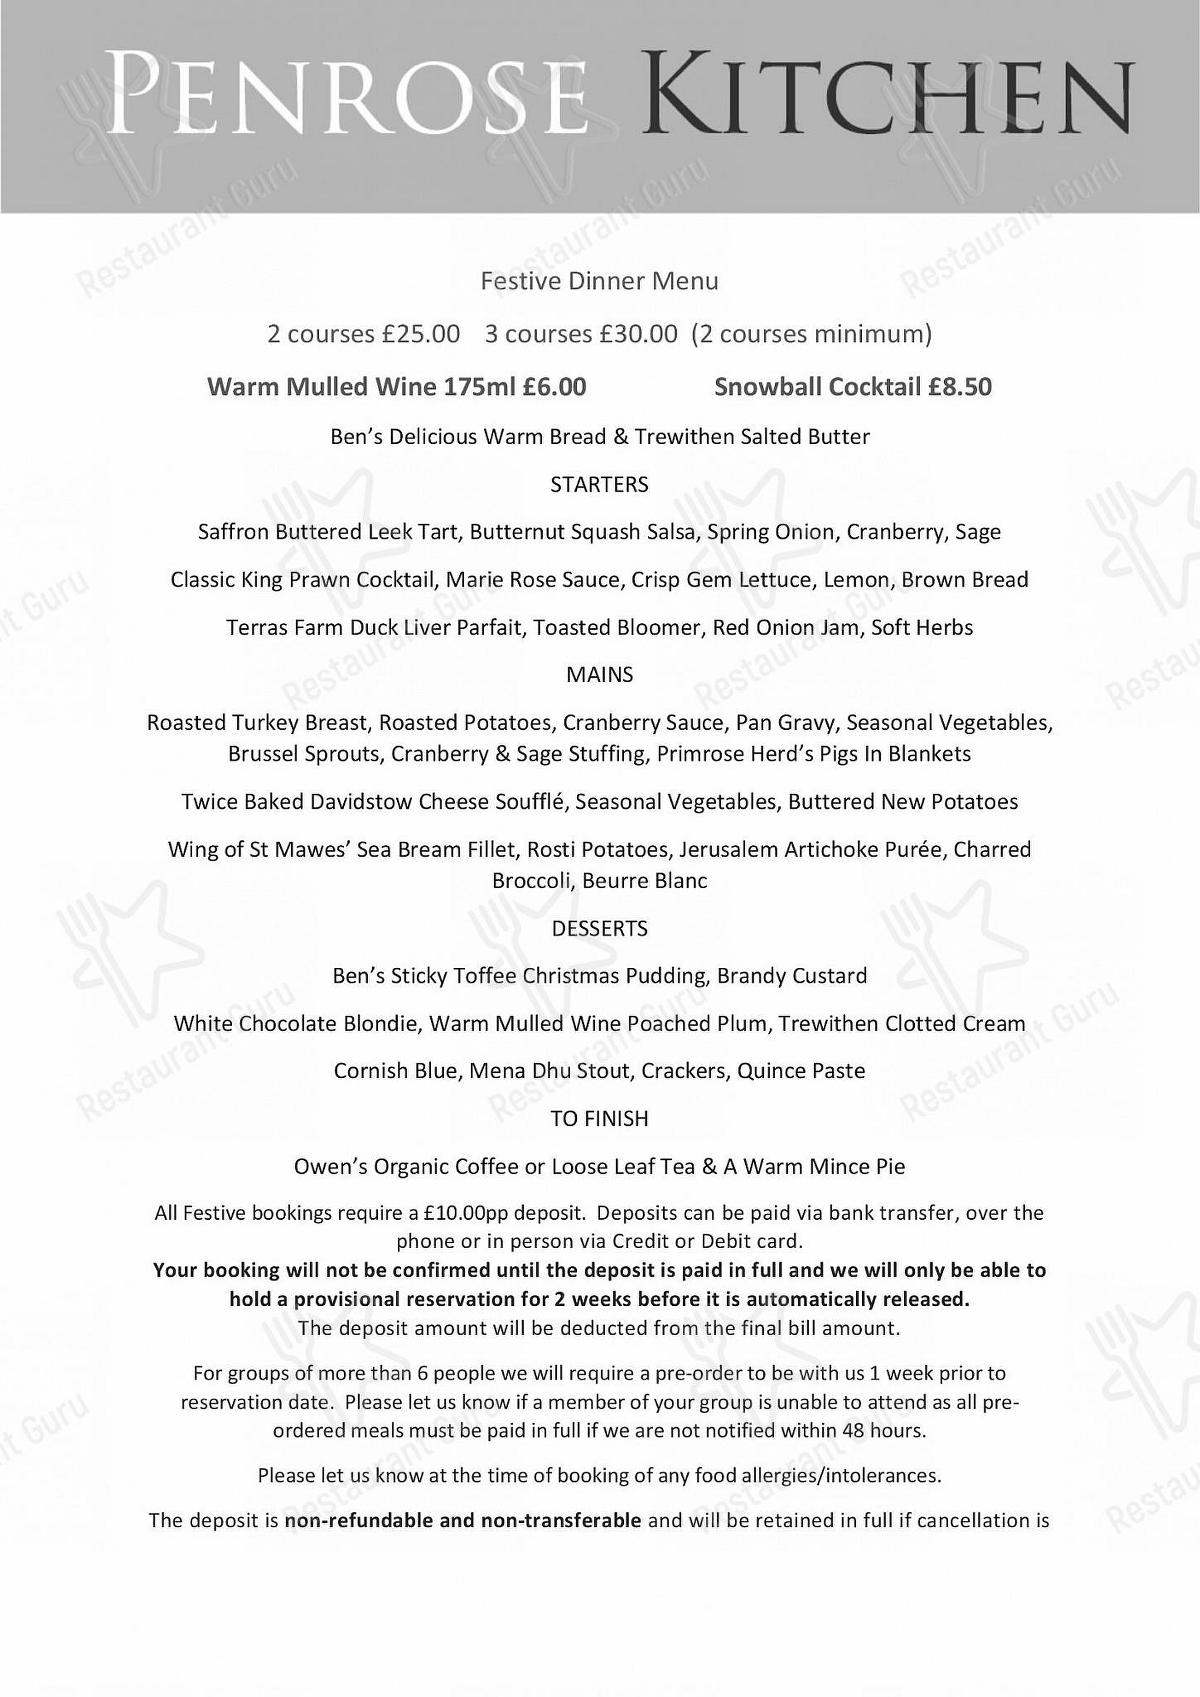 Check out the menu for Penrose Kitchen